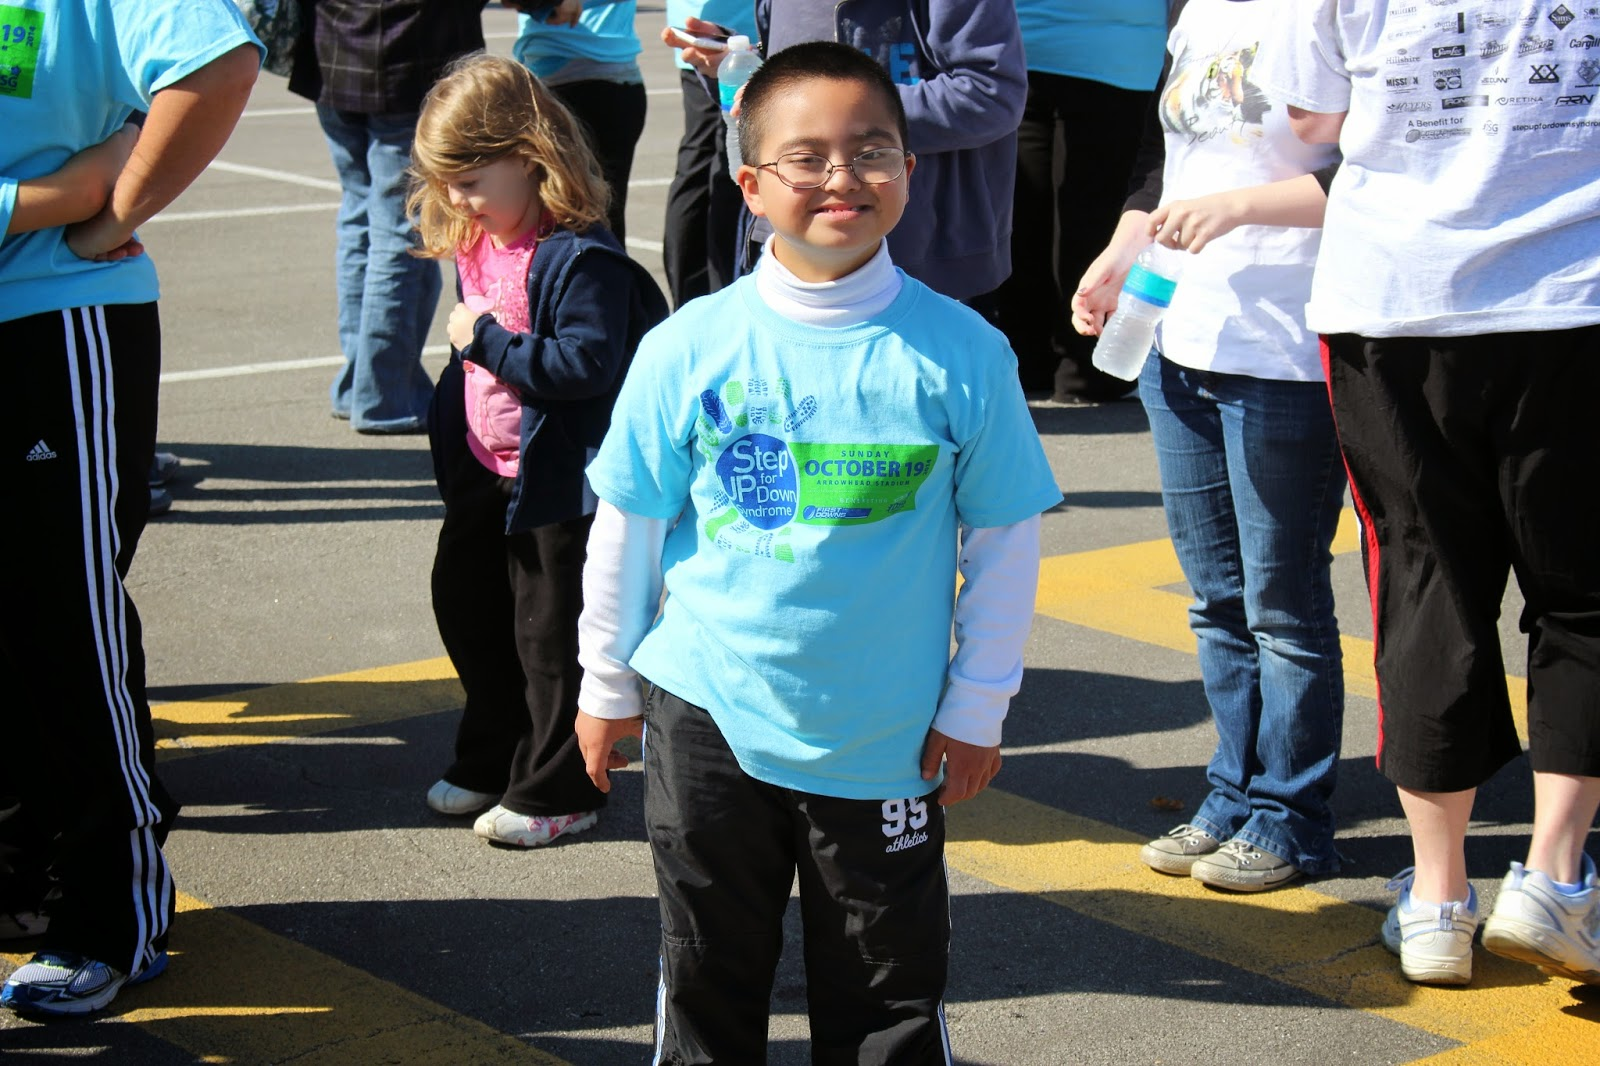 First Downs for Down Syndrome Blog